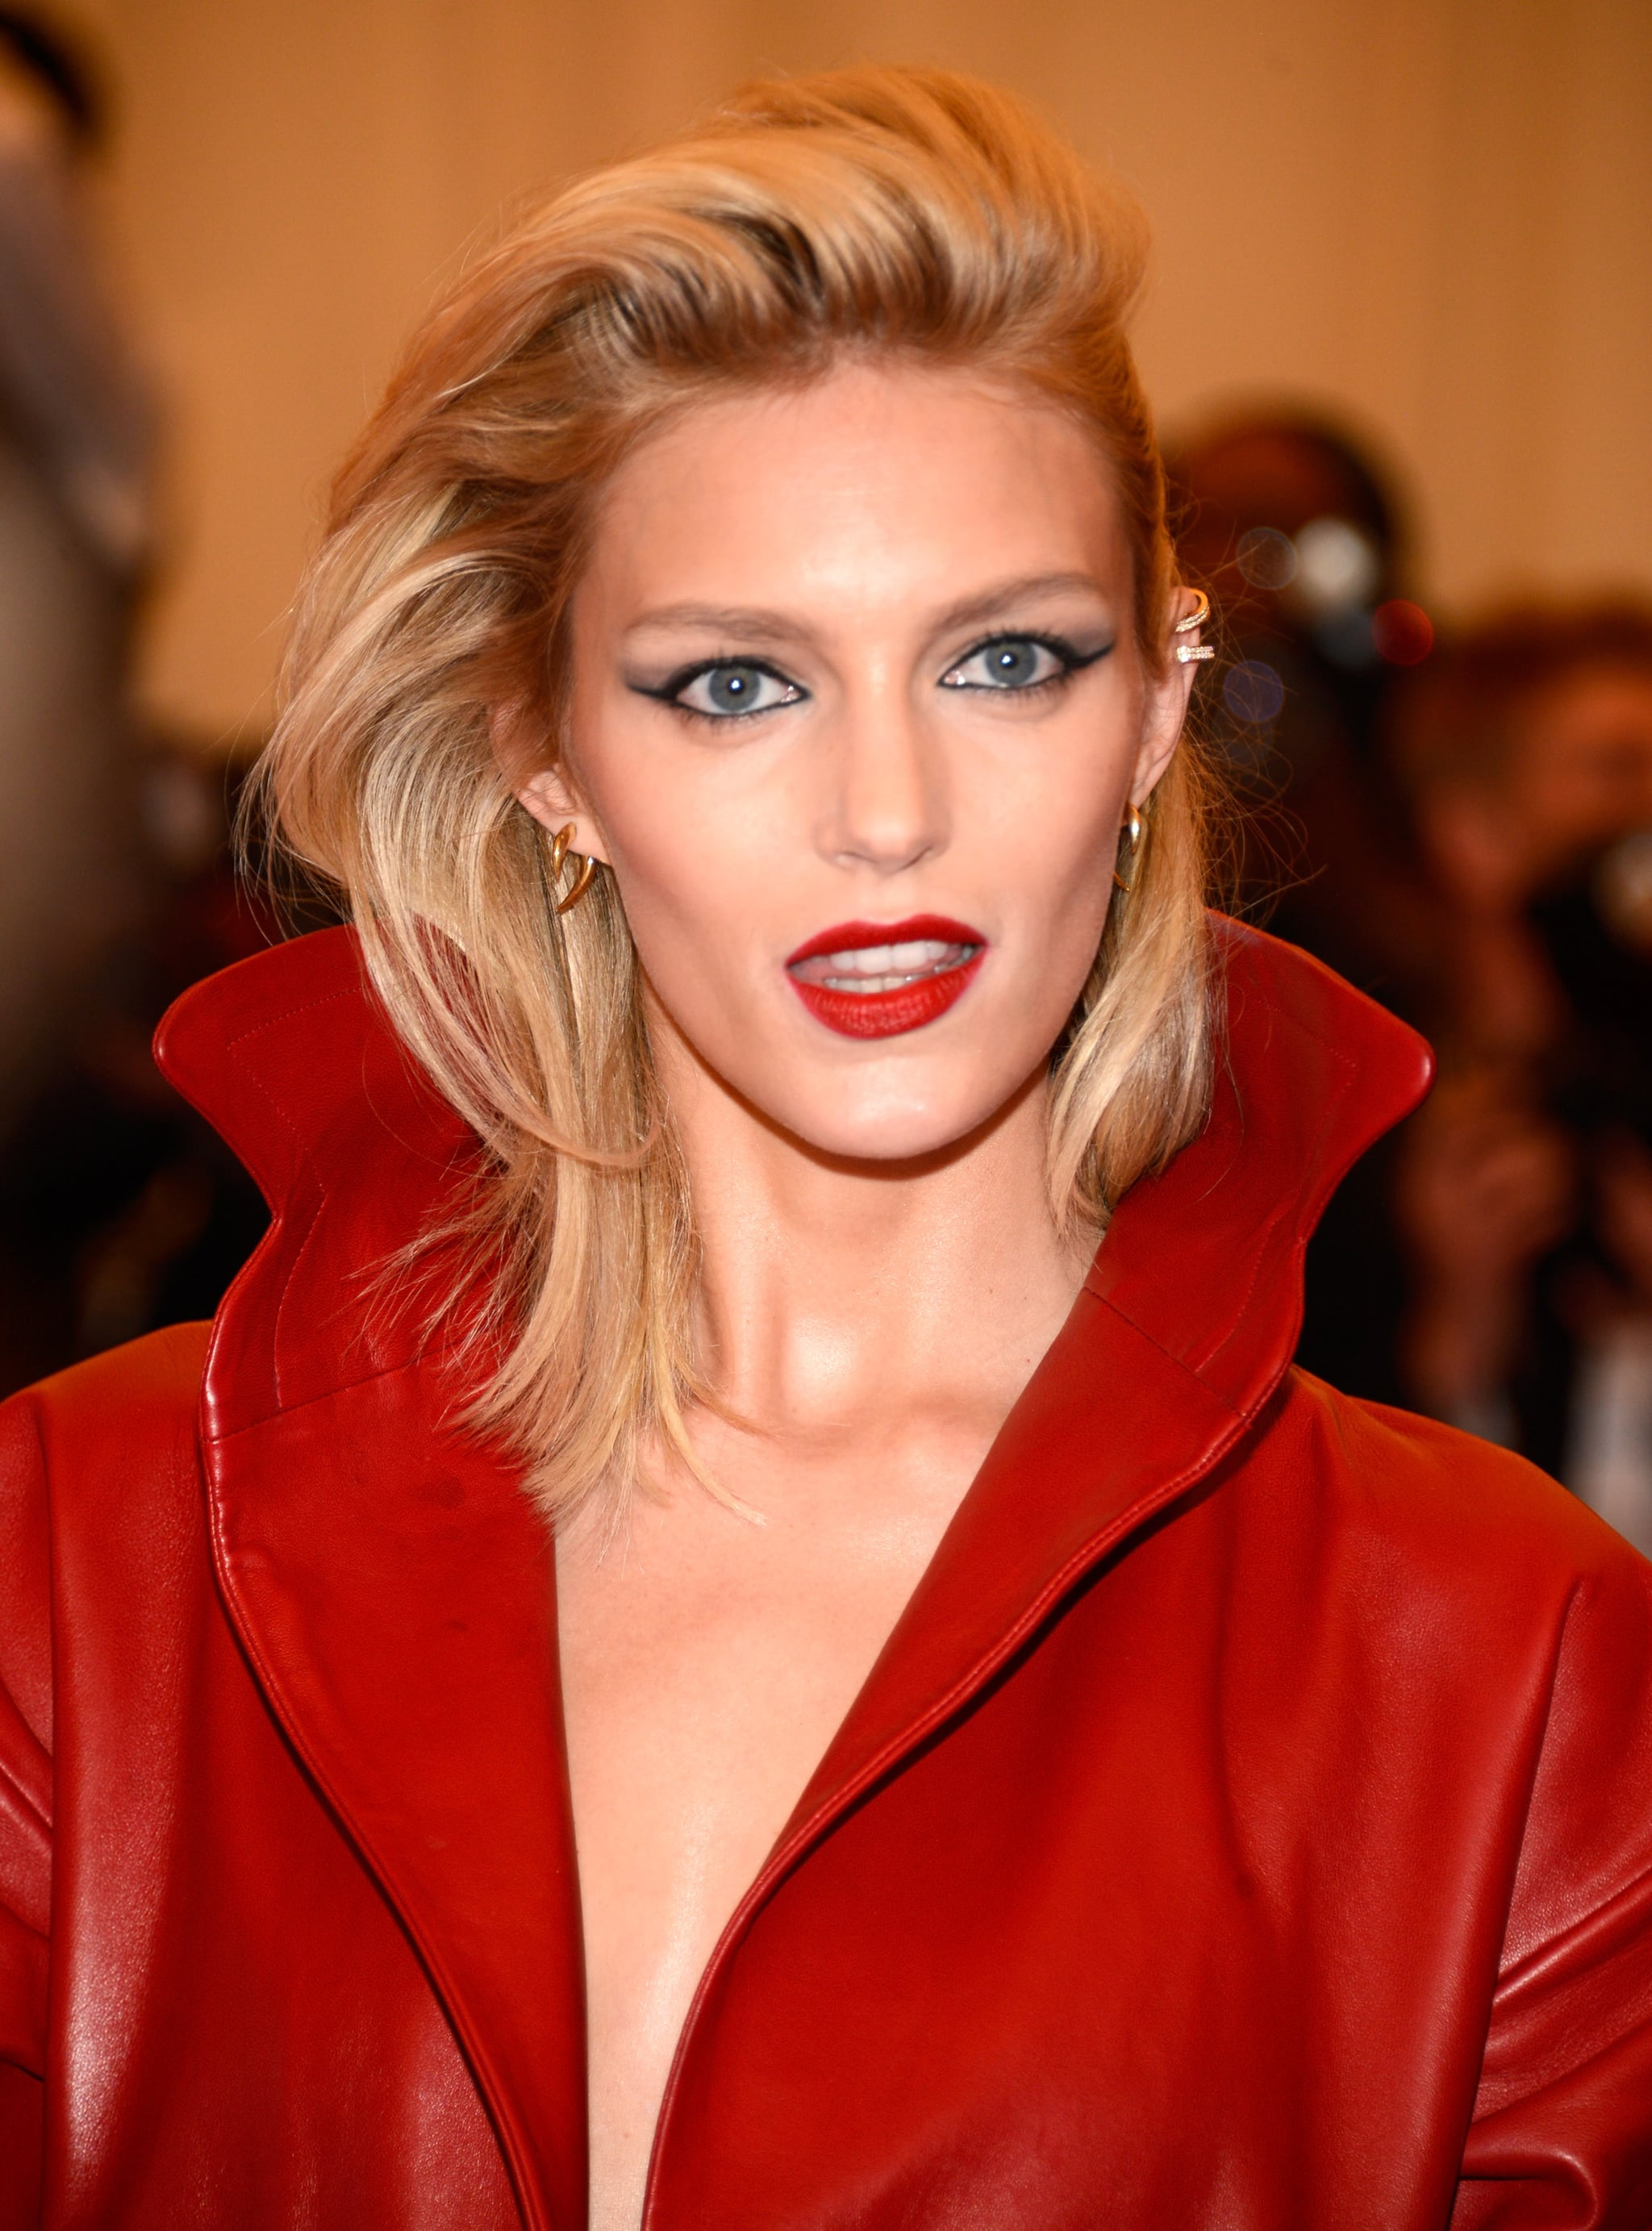 Anja Rubik Hot Red Lips - Anja Rubik Hot Red Lips